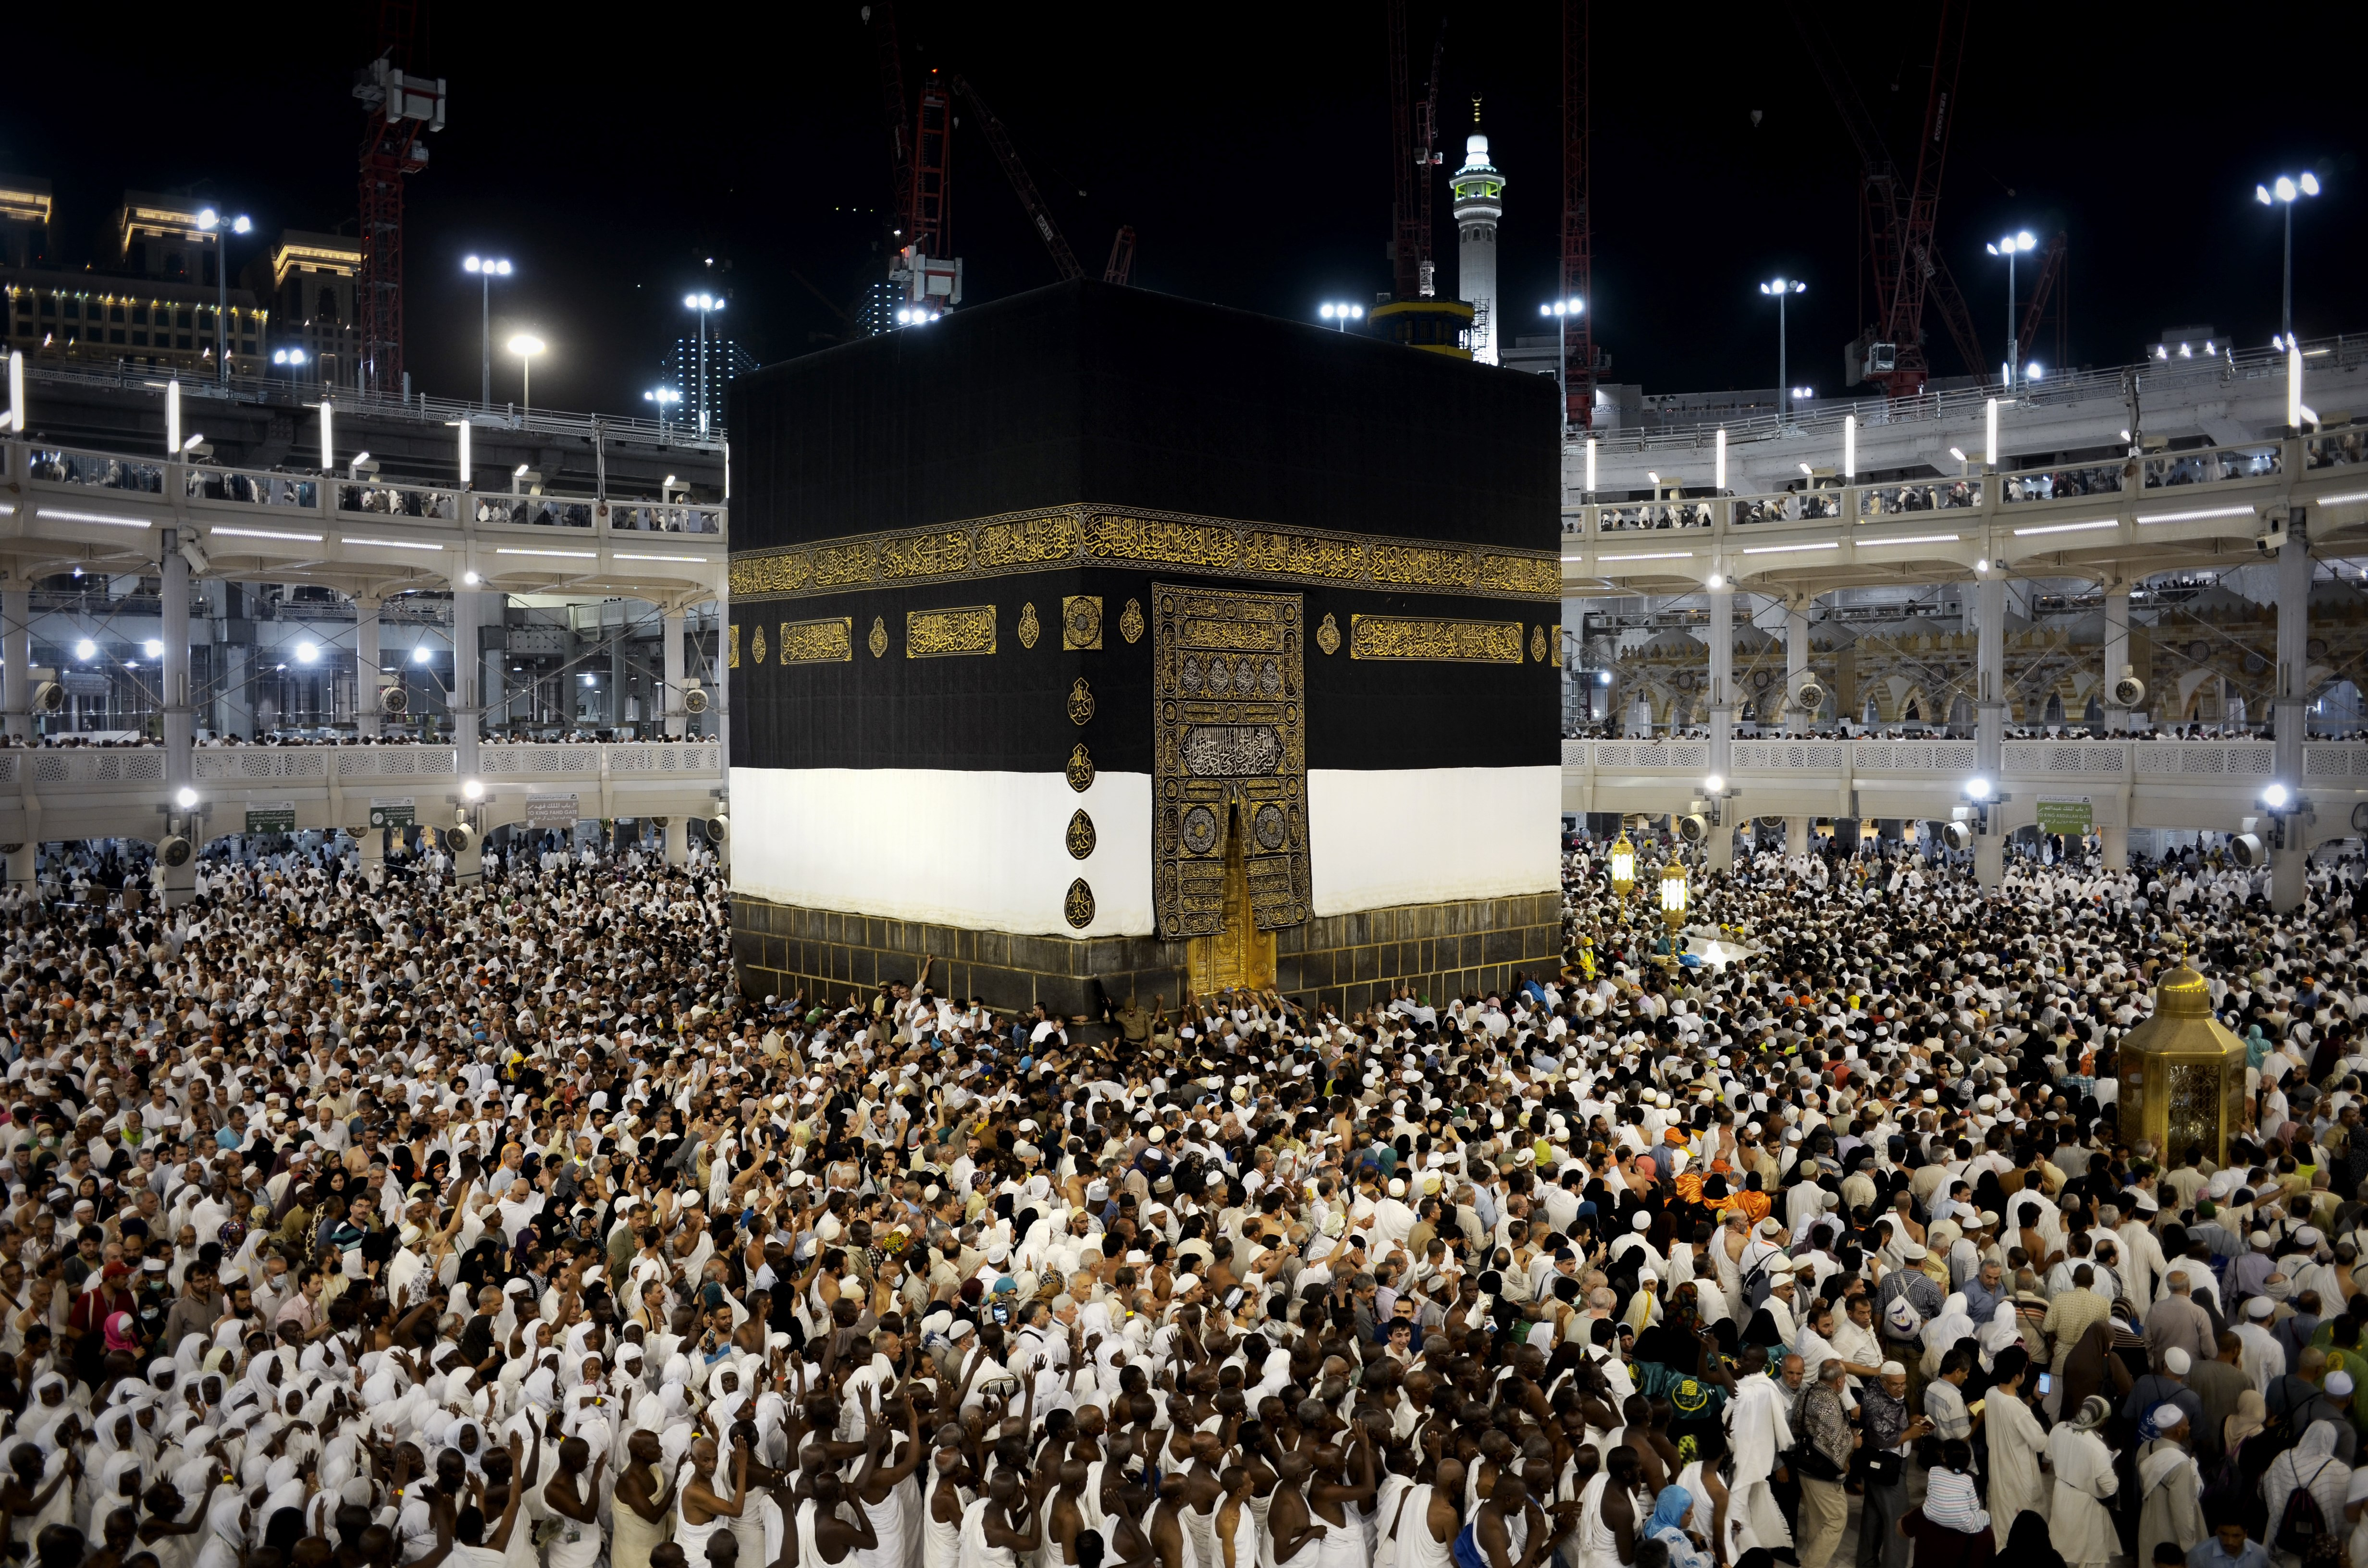 mecca muslim dating site Watch video photographs obtained by the independent reveal how muslim pilgrims begin rituals in mecca dozens of key historical sites dating back to.